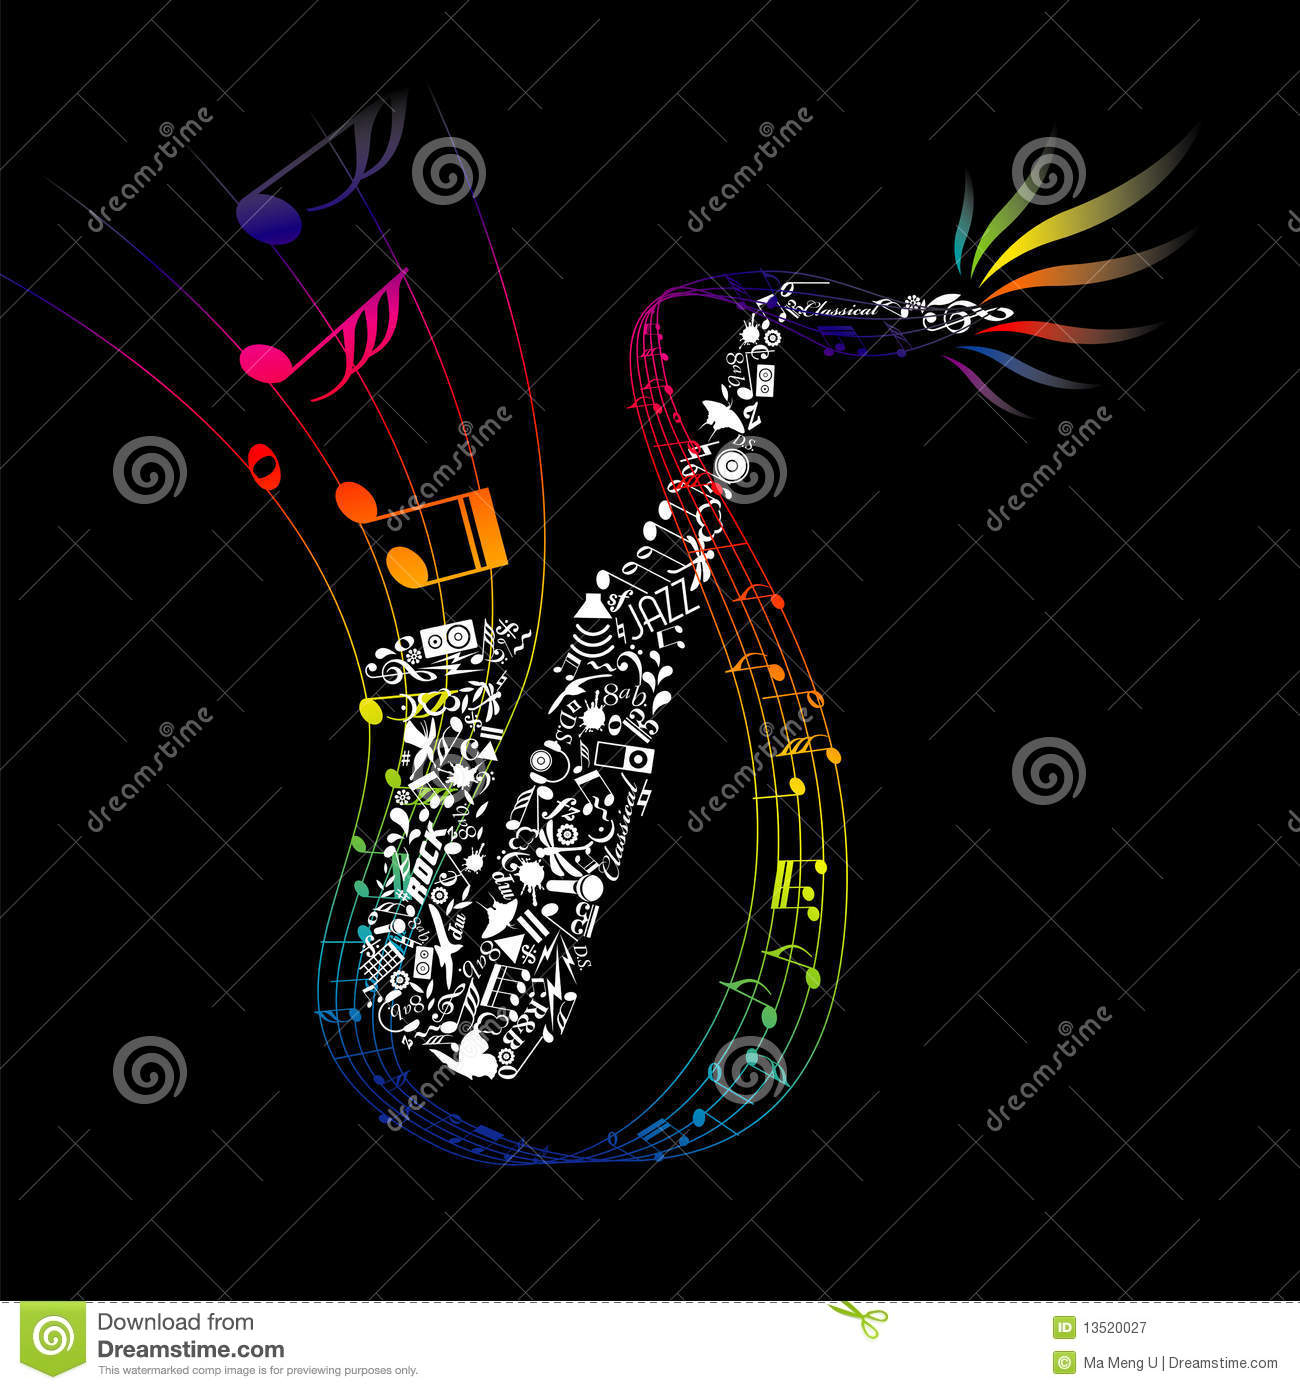 Bakery Wallpaper Hd Colorful Saxophone With Composed Music Elements Royalty